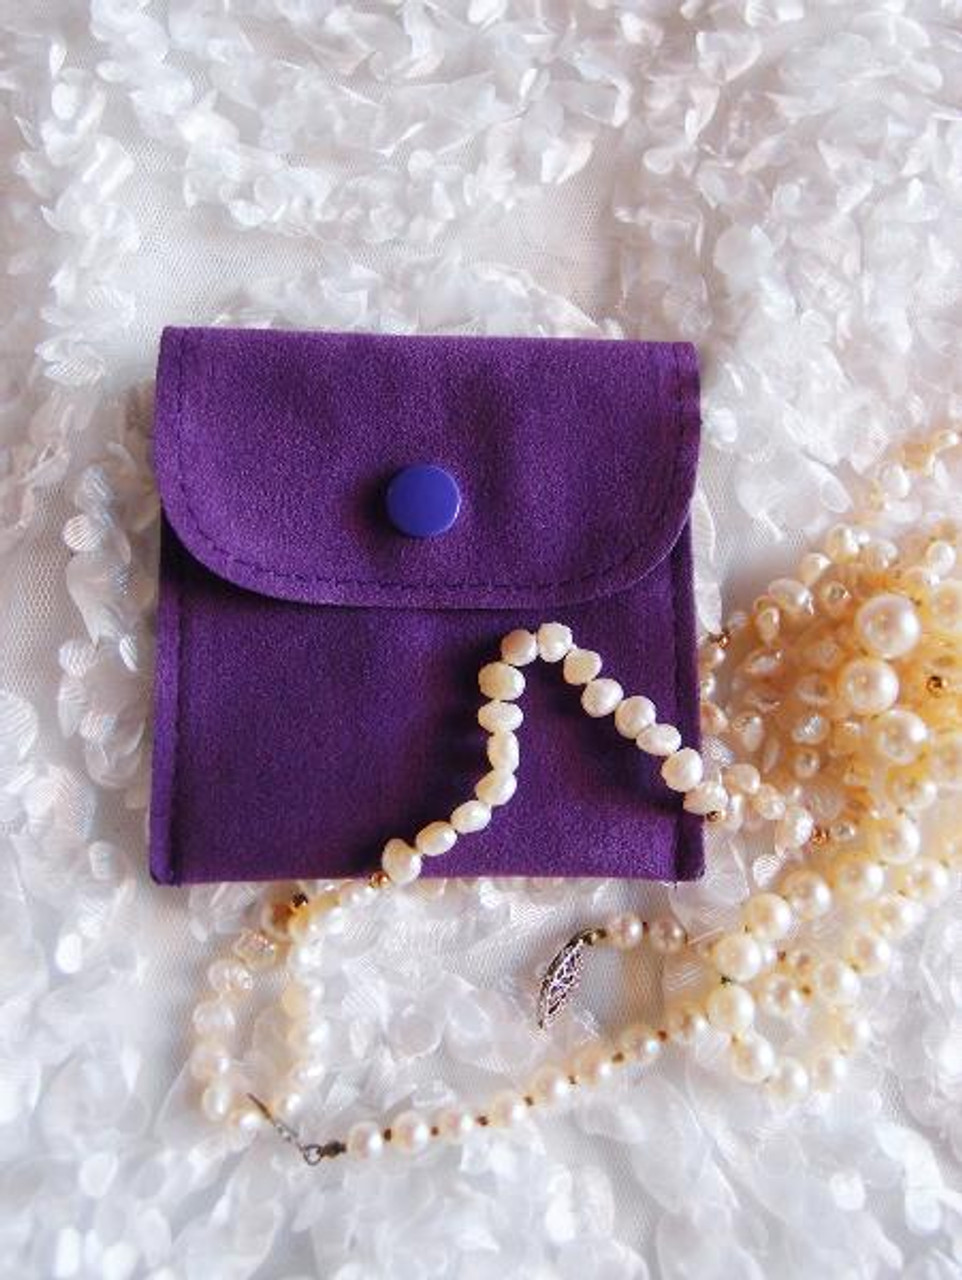 Purple Velvet Jewelry Pouch with Snap Fastener 3 x 3 inches, J134-26 | Packaging Decor